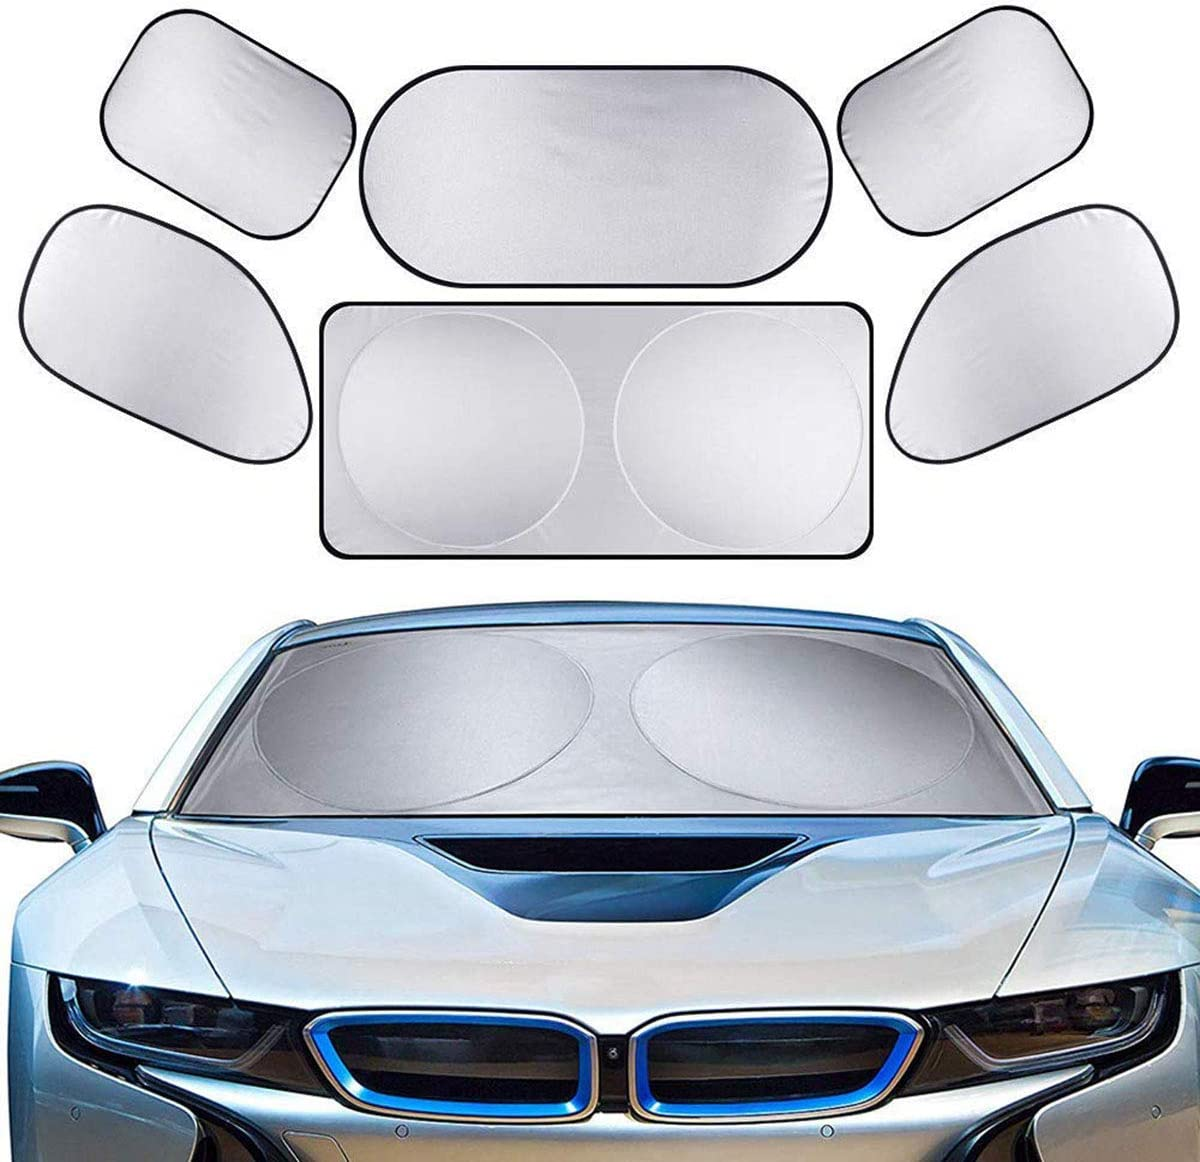 Fits Windshields of Various Sizes 6PCS Silver Coating Full Car Auto Windshield Sun Shade Sun Block UV Protection Cover Keep Vehicle Cool Eurobuy Car Windshield Sun Shade Easy to Use